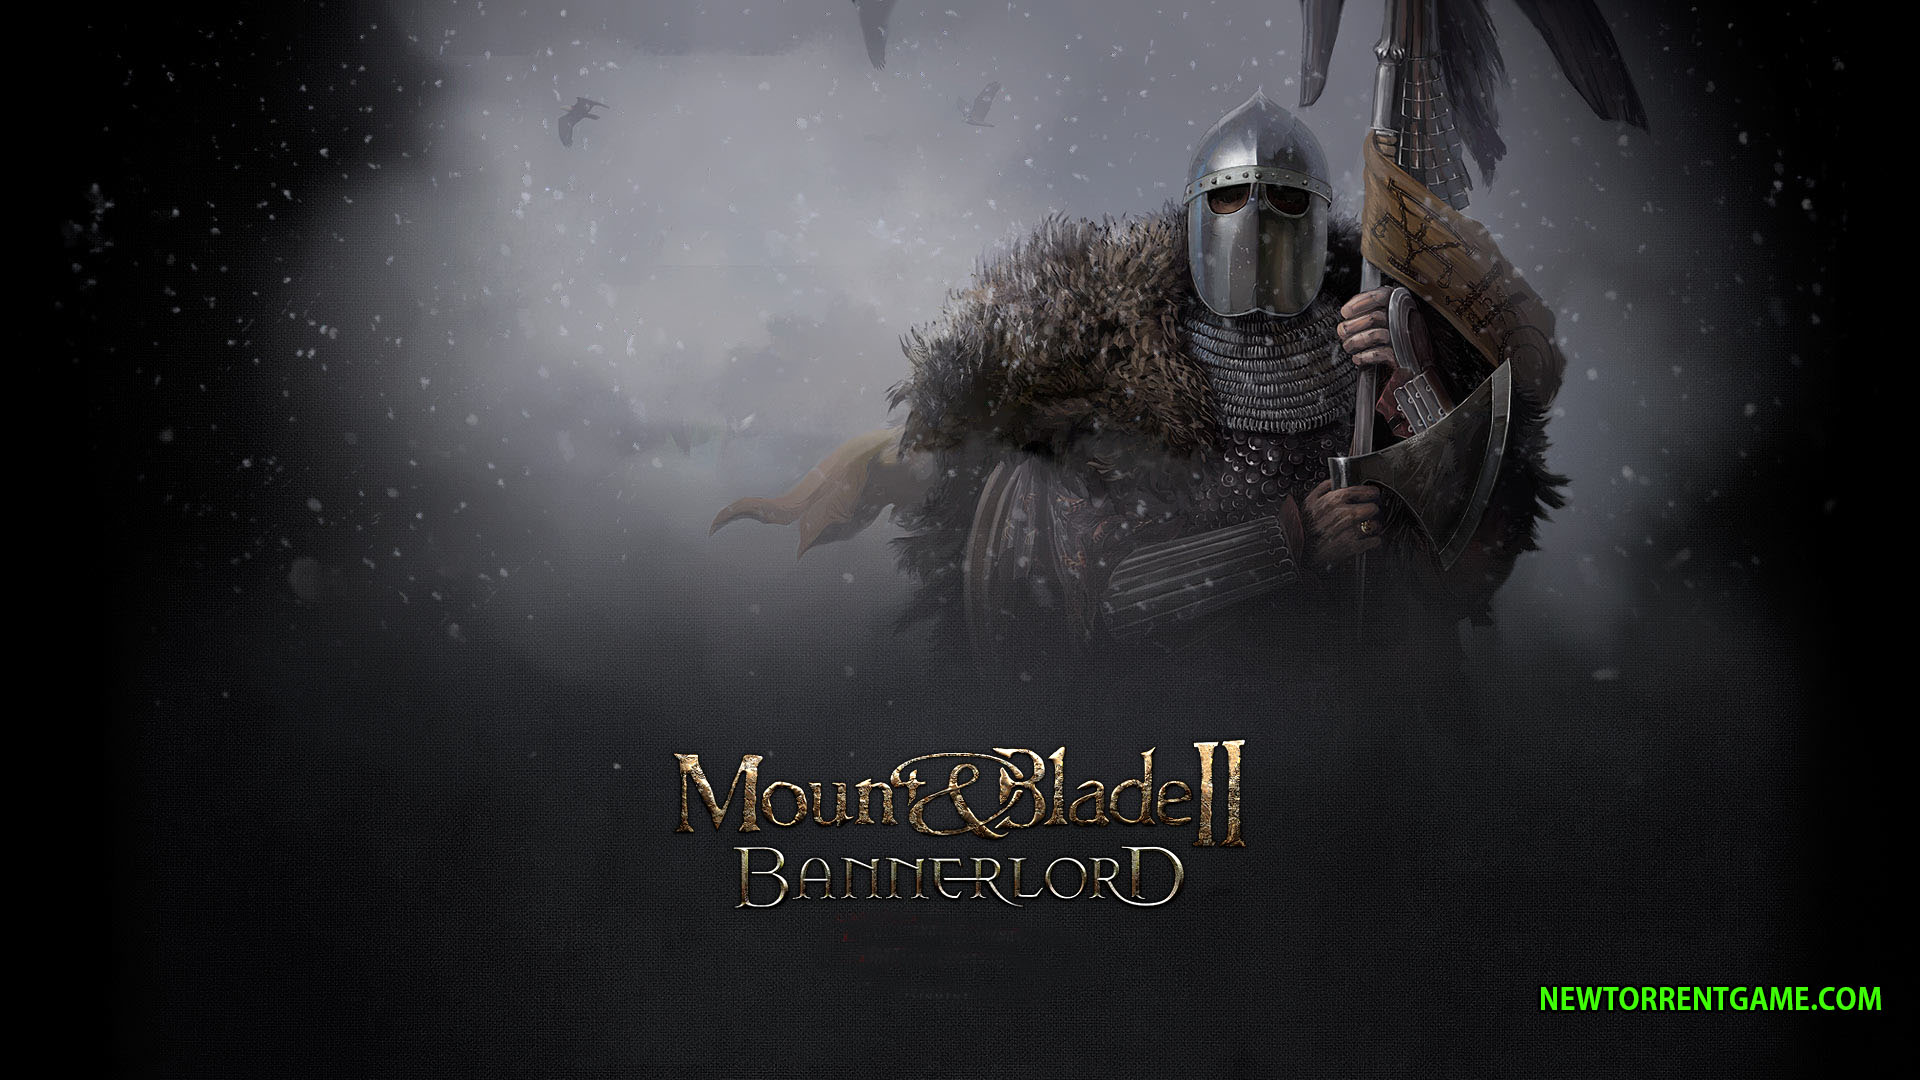 MOUNT AND BLADE II BANNERLORD TORRENT - FREE TORRENT CRACK DOWNLOAD - NEWTORRENTGAME